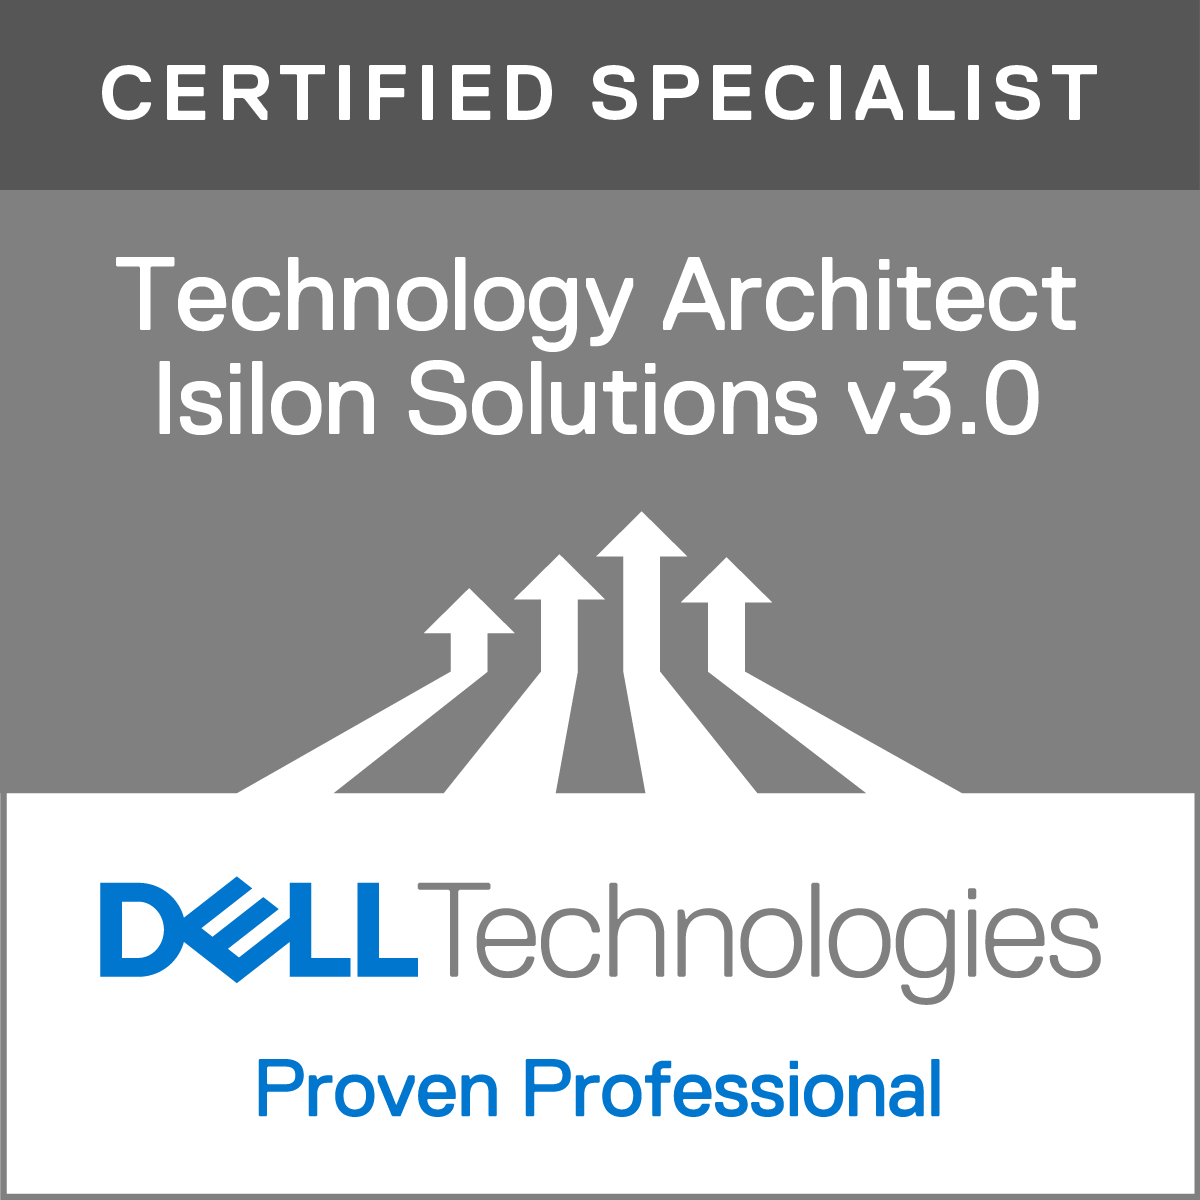 Specialist - Technology Architect, Isilon Solutions Version 3.0